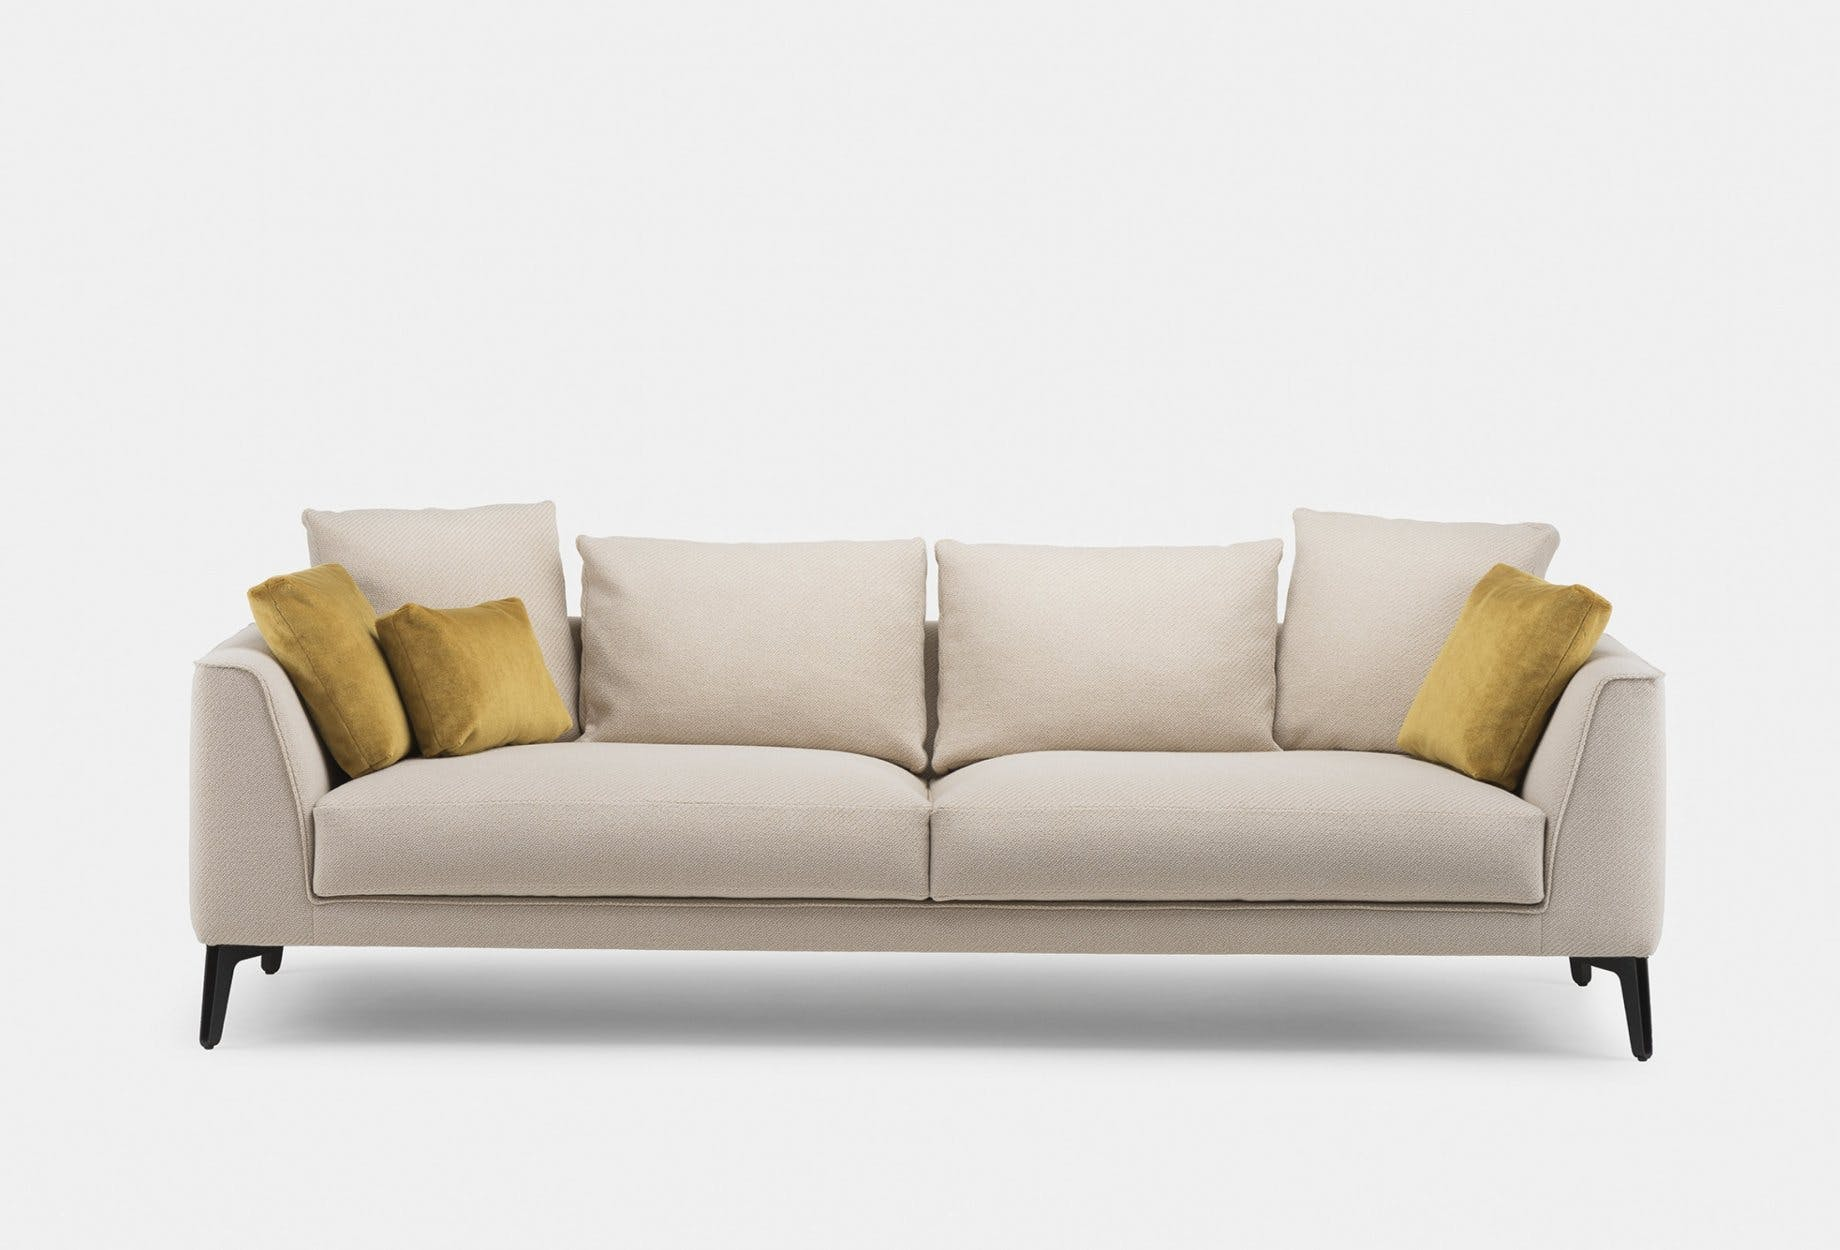 401 Mc Queen Sofa By Matthew Hilton In Coda 2 422 Fabric With Scatter Cushions In Pillar 461 Front3Web 1840X1250